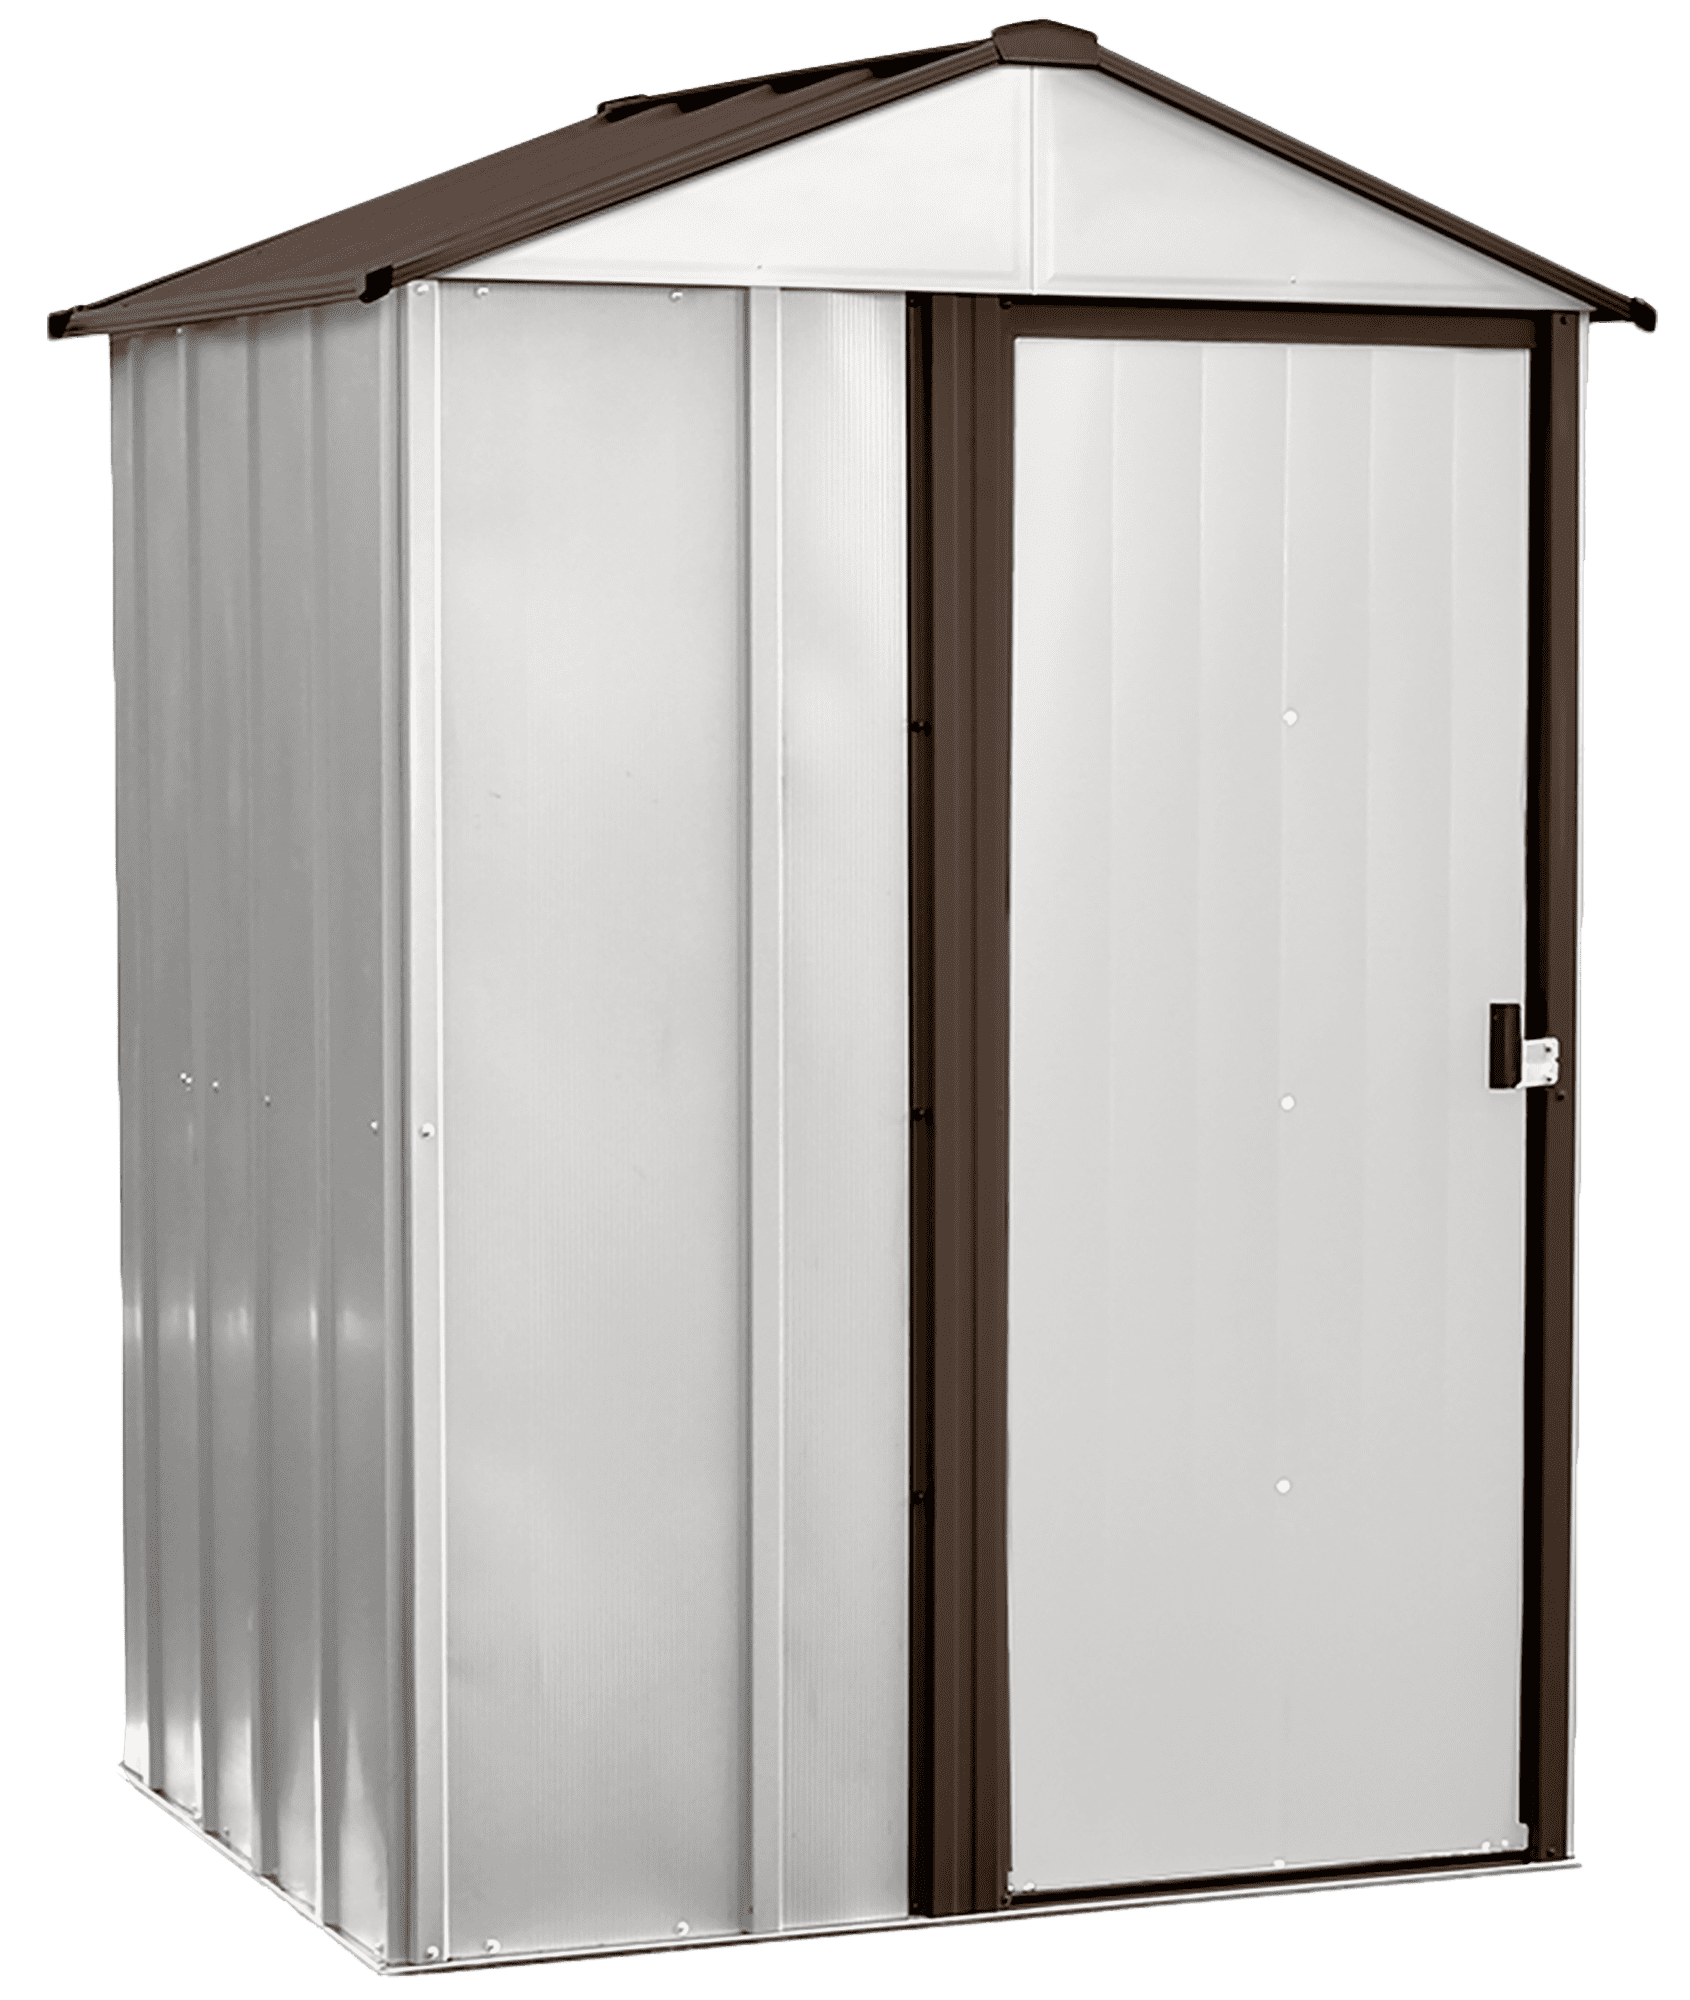 Newburgh 5x4-Foot Steel Storage Shed in Coffee/Eggshell